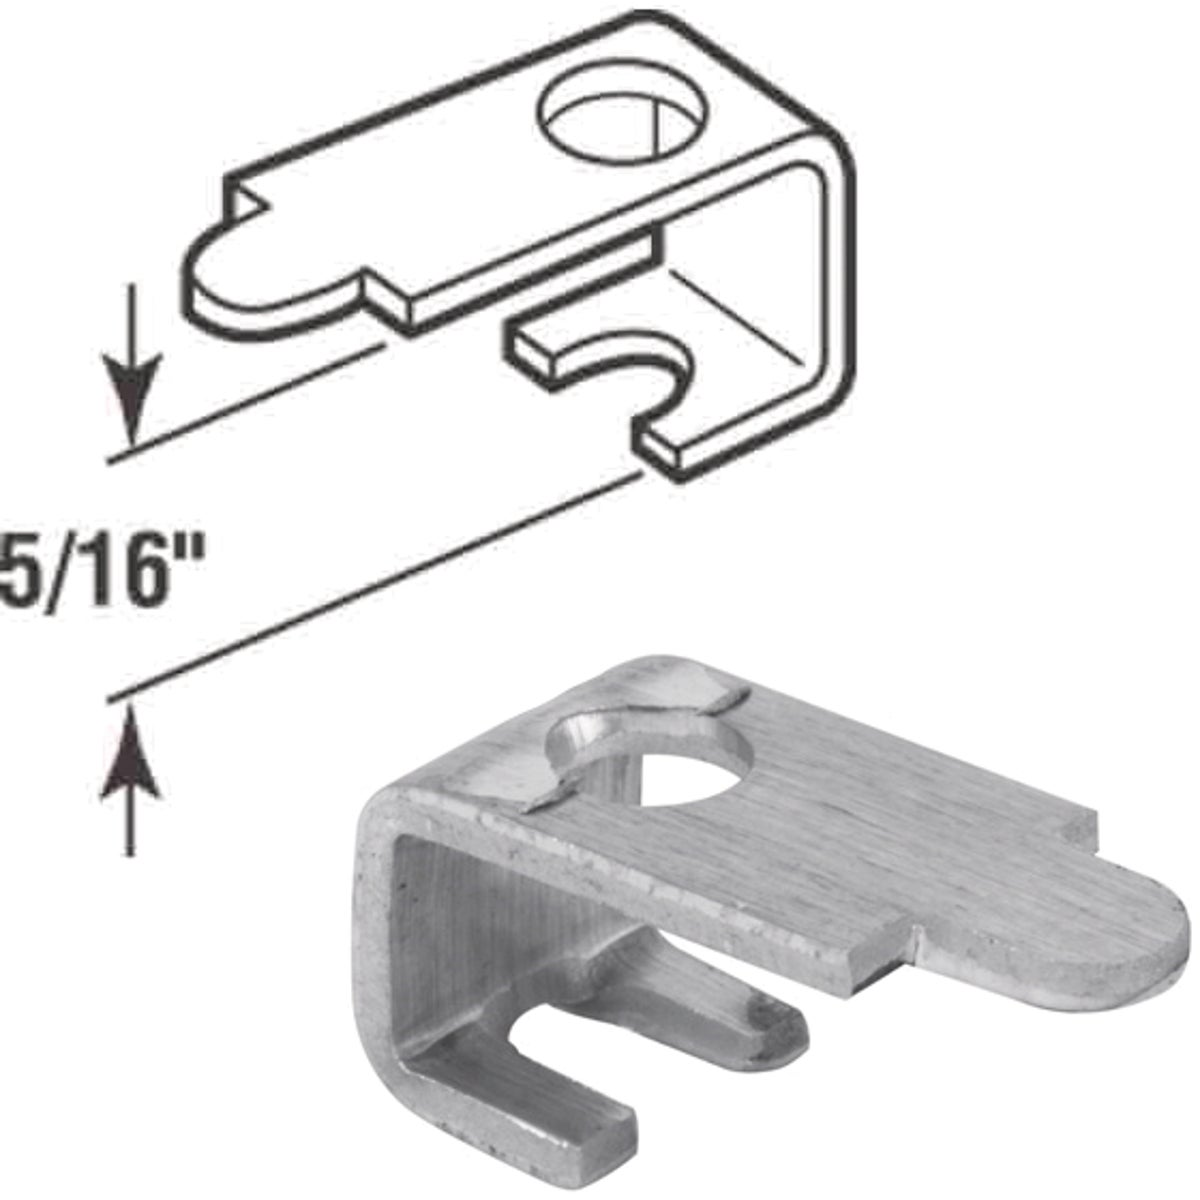 "5/16"" ALUM SCREEN CLIP - PL7744 by Prime Line Products"